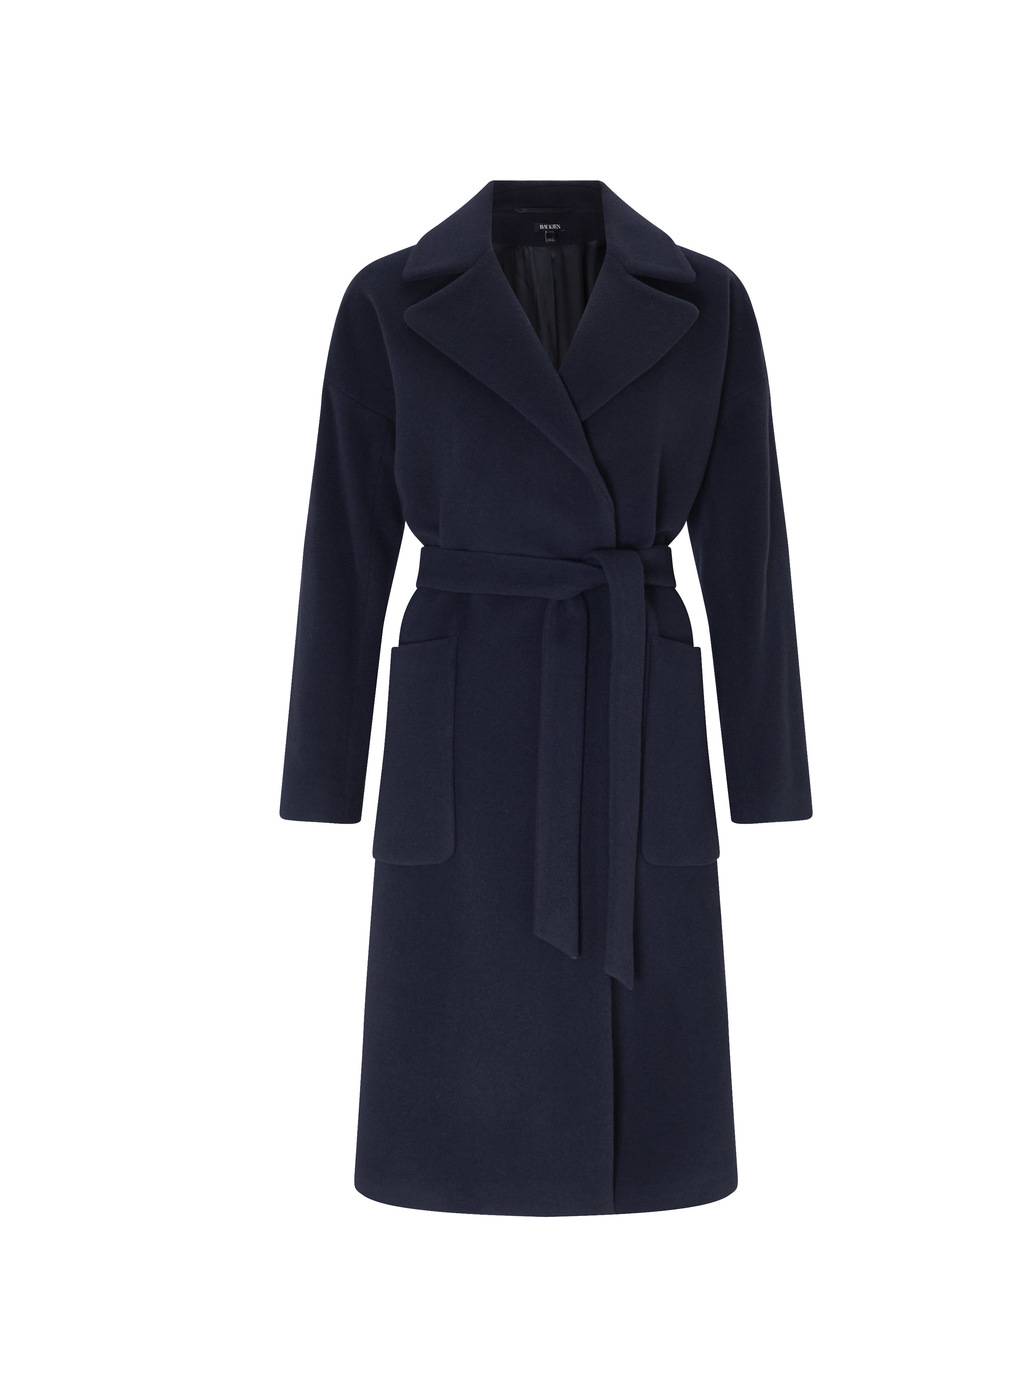 Womenswear Sailsbury Wrap Coat - pattern: plain; length: on the knee; style: wrap around; fit: slim fit; collar: standard lapel/rever collar; predominant colour: navy; occasions: casual; waist detail: belted waist/tie at waist/drawstring; fibres: cashmere - 100%; sleeve length: long sleeve; sleeve style: standard; texture group: knits/crochet; collar break: medium; pattern type: fabric; pattern size: light/subtle; season: a/w 2016